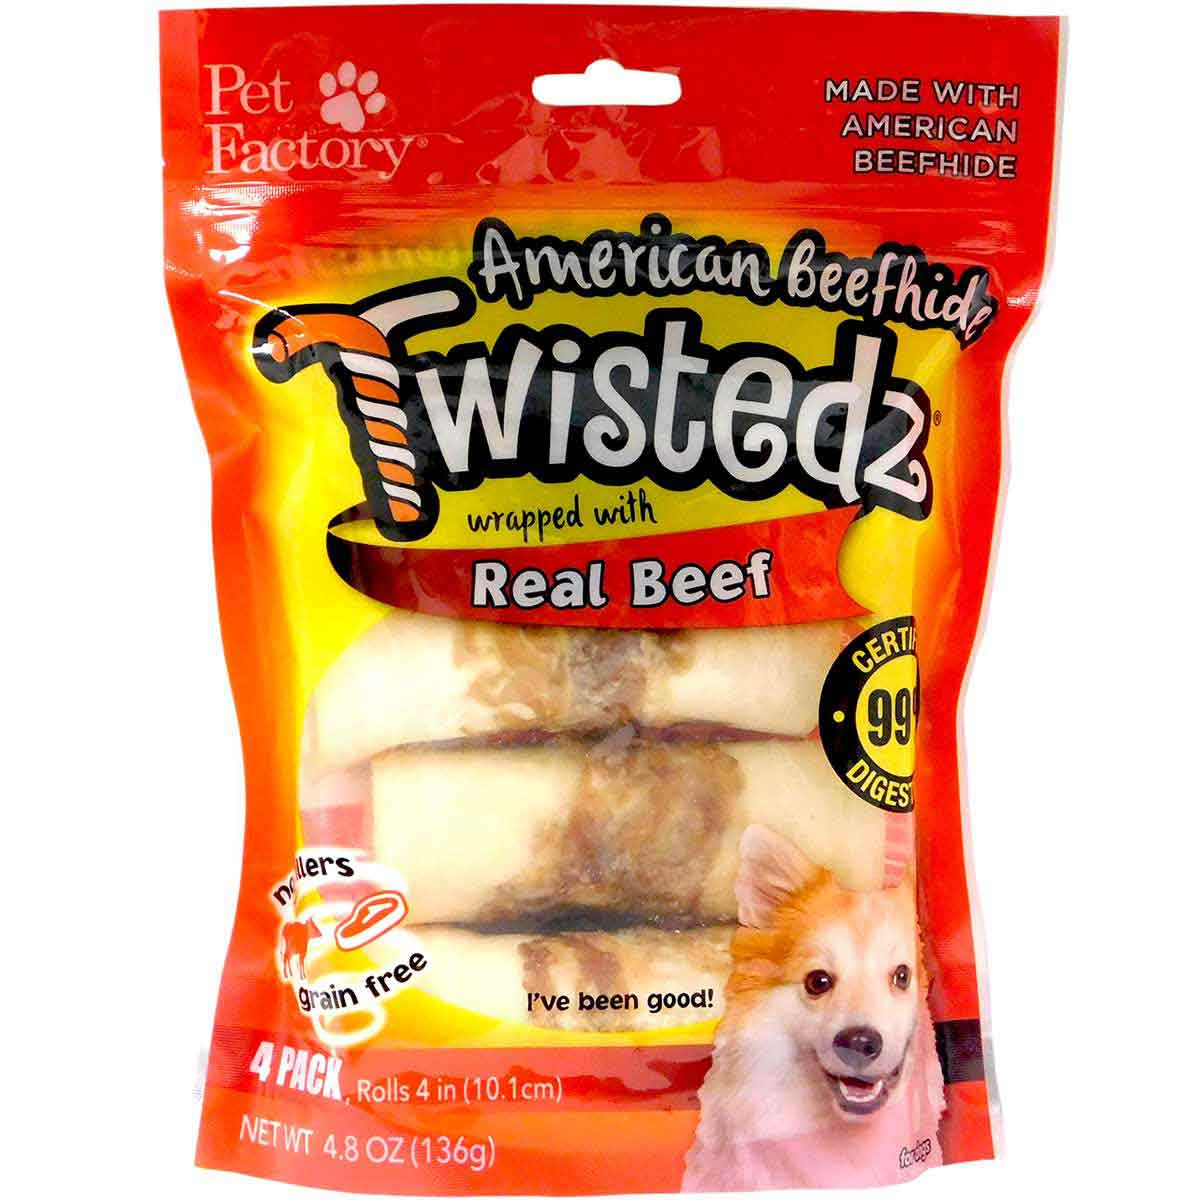 4 Pack Pet Factory Twistedz Beef 4-4.5 inch Rawhide Rolls